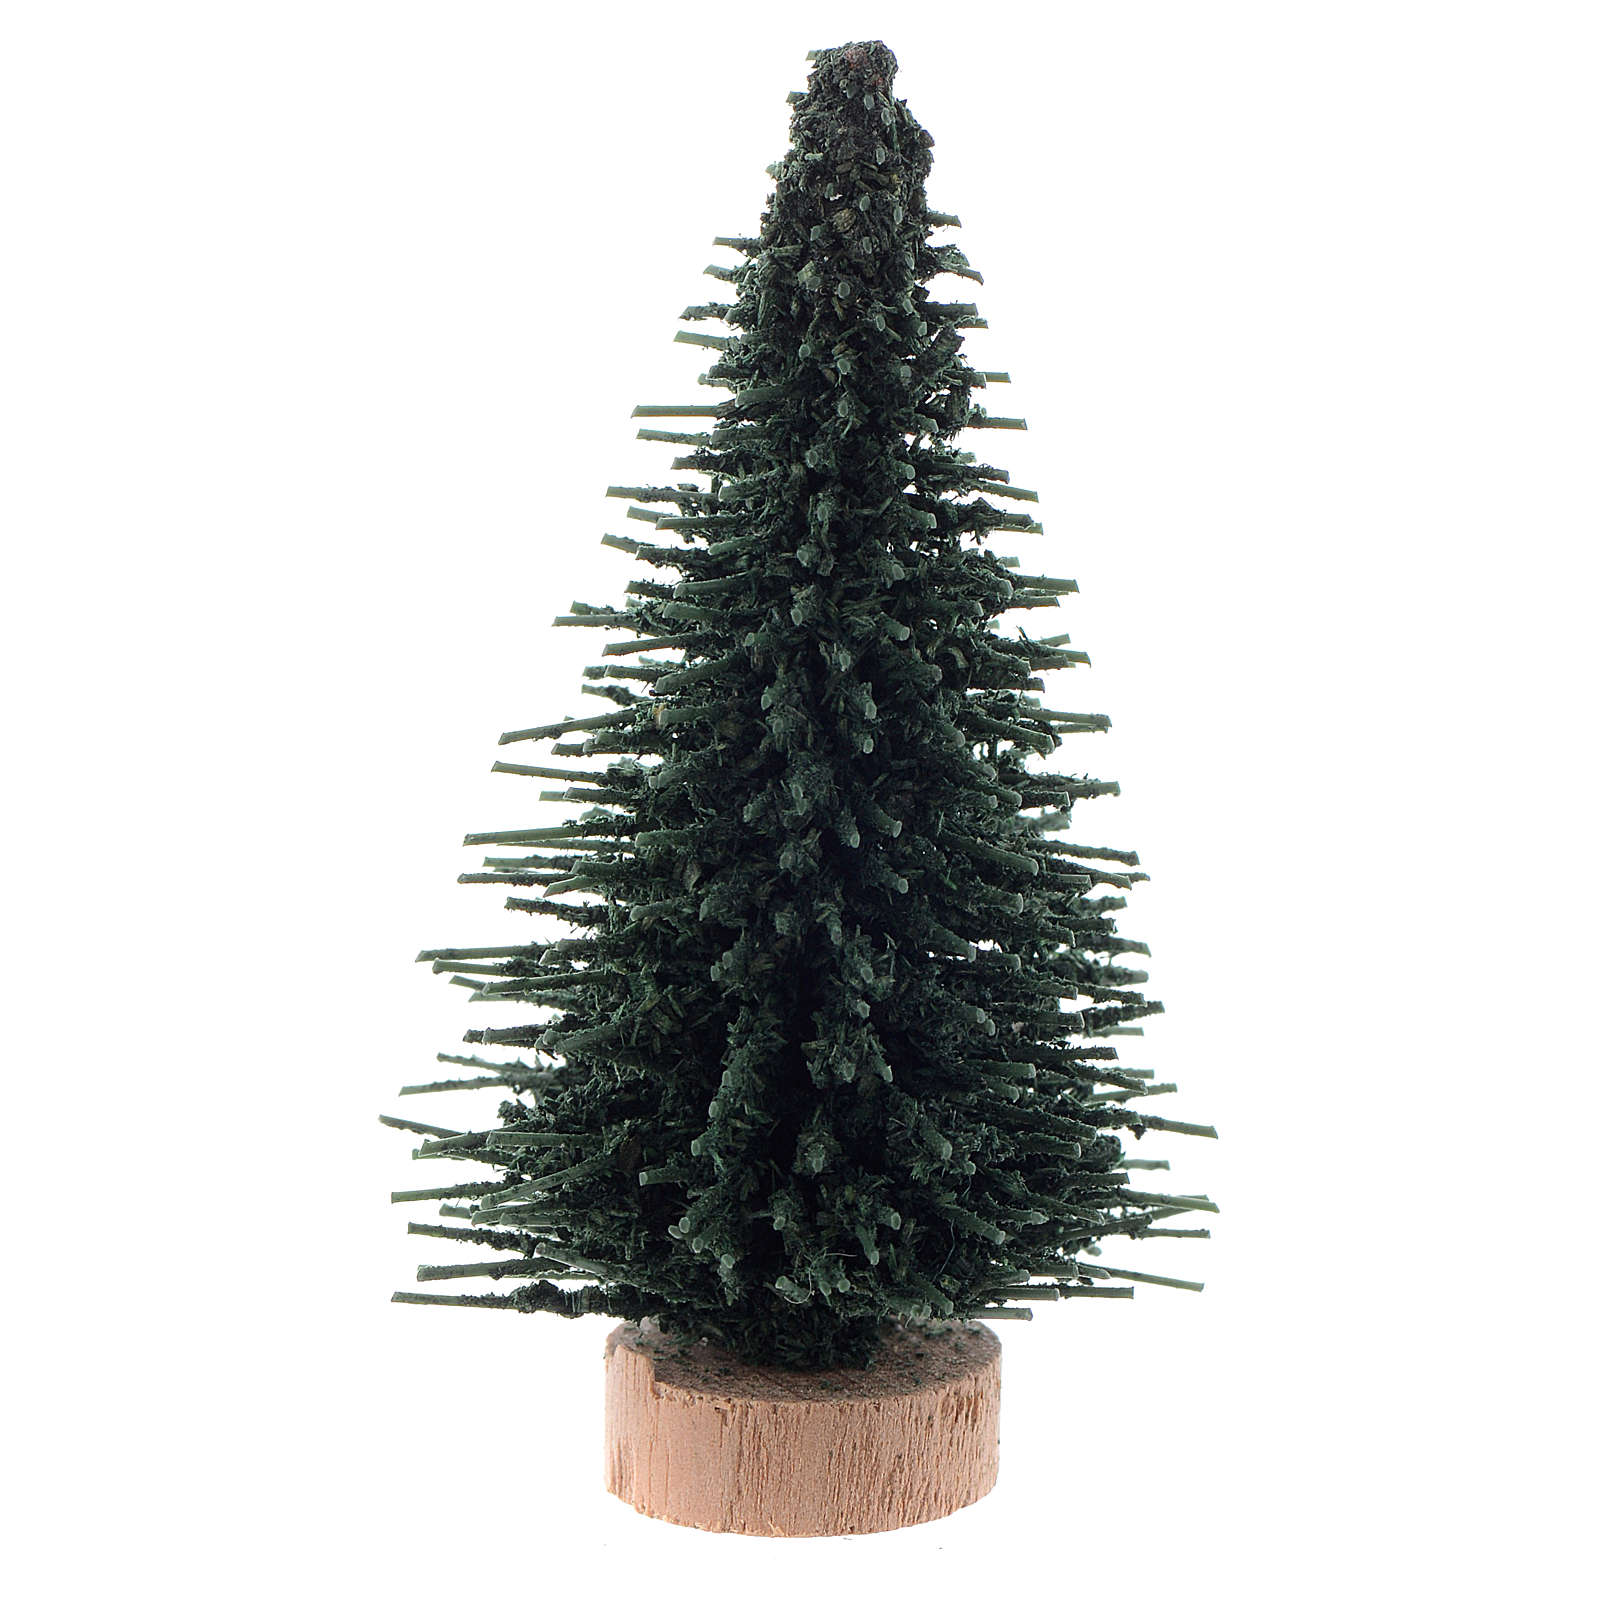 Green Pine Tree for DIY nativity 4